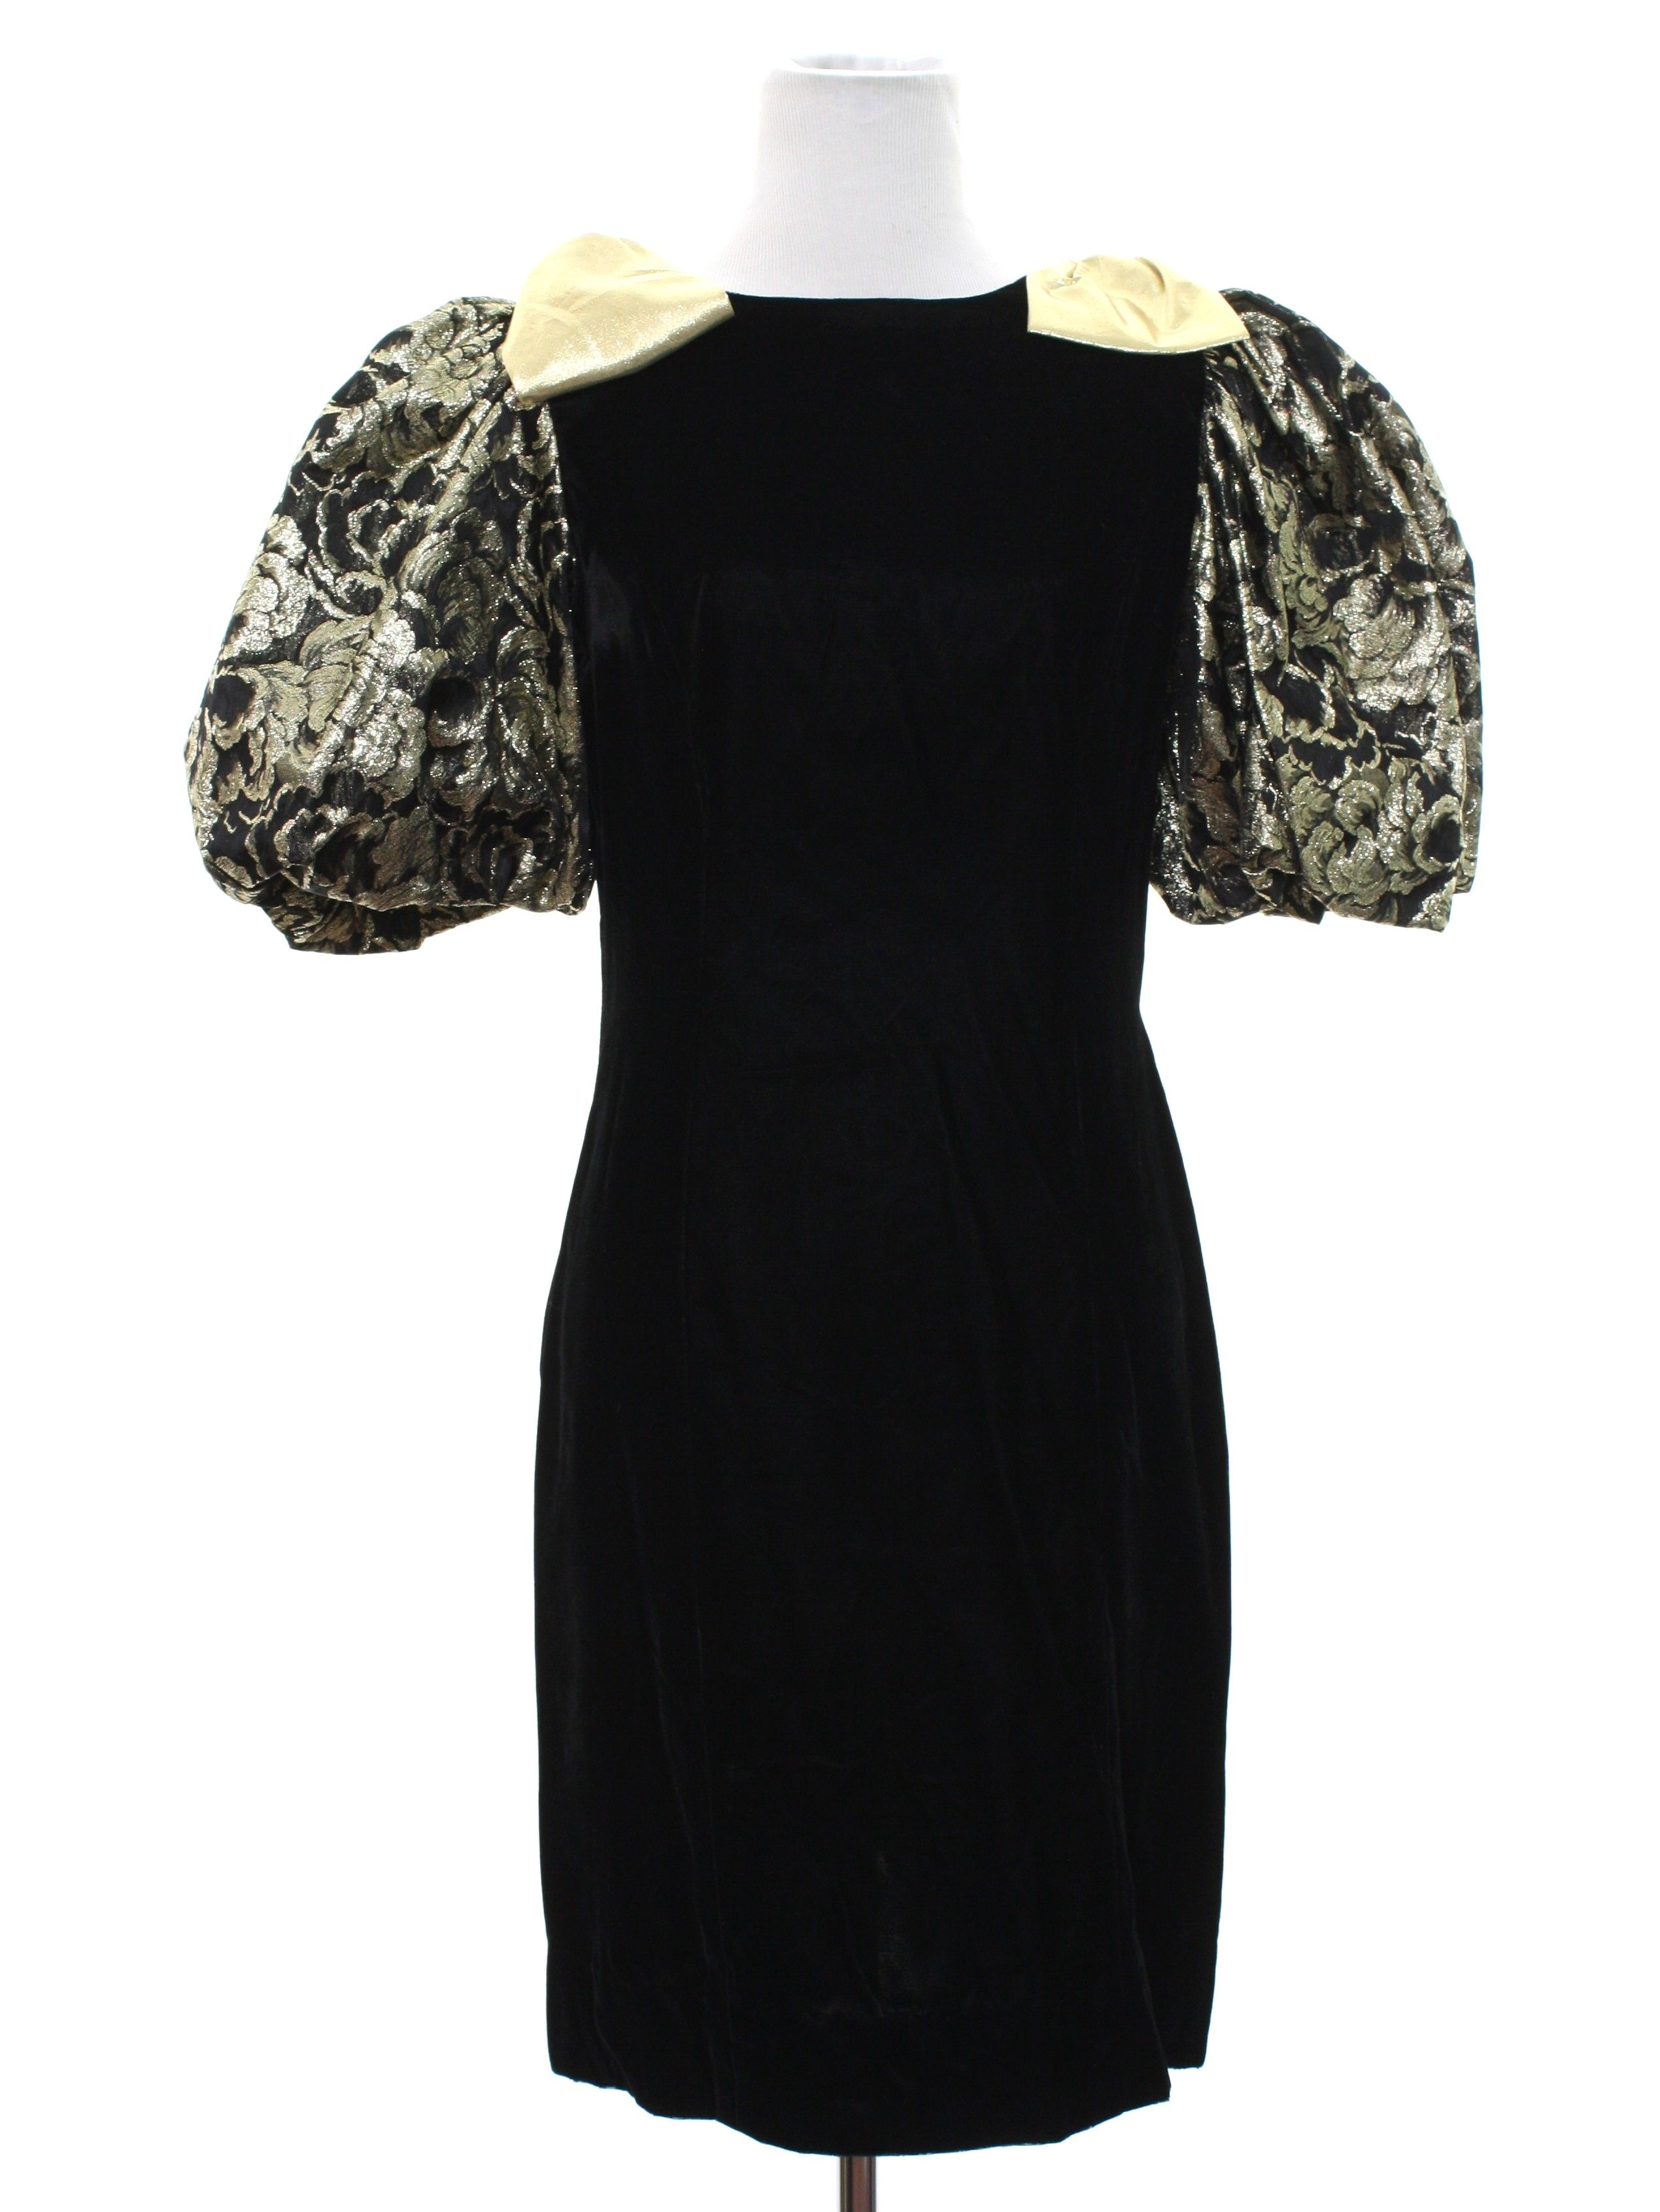 fd06a653920f Missing Label Eighties Vintage Cocktail Dress  80s -Missing Label- Womens  black background rayon